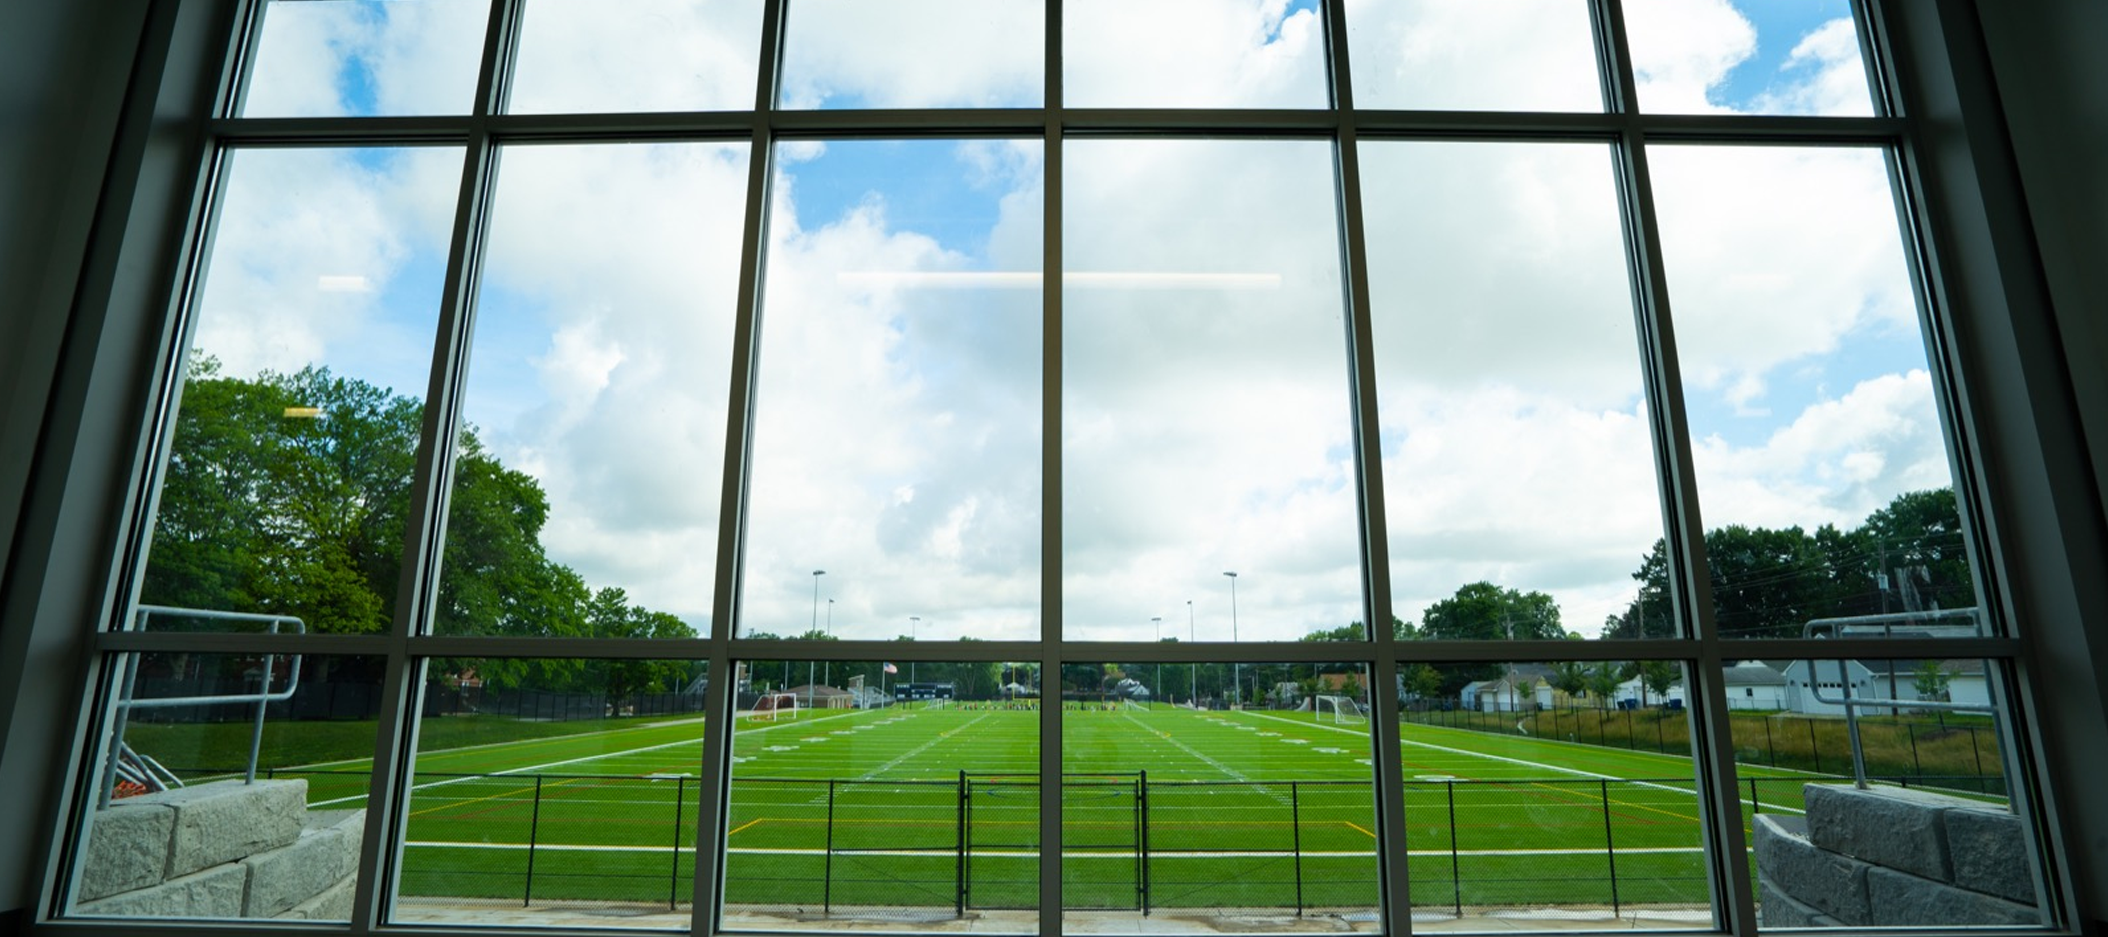 header image of window looking out to football field